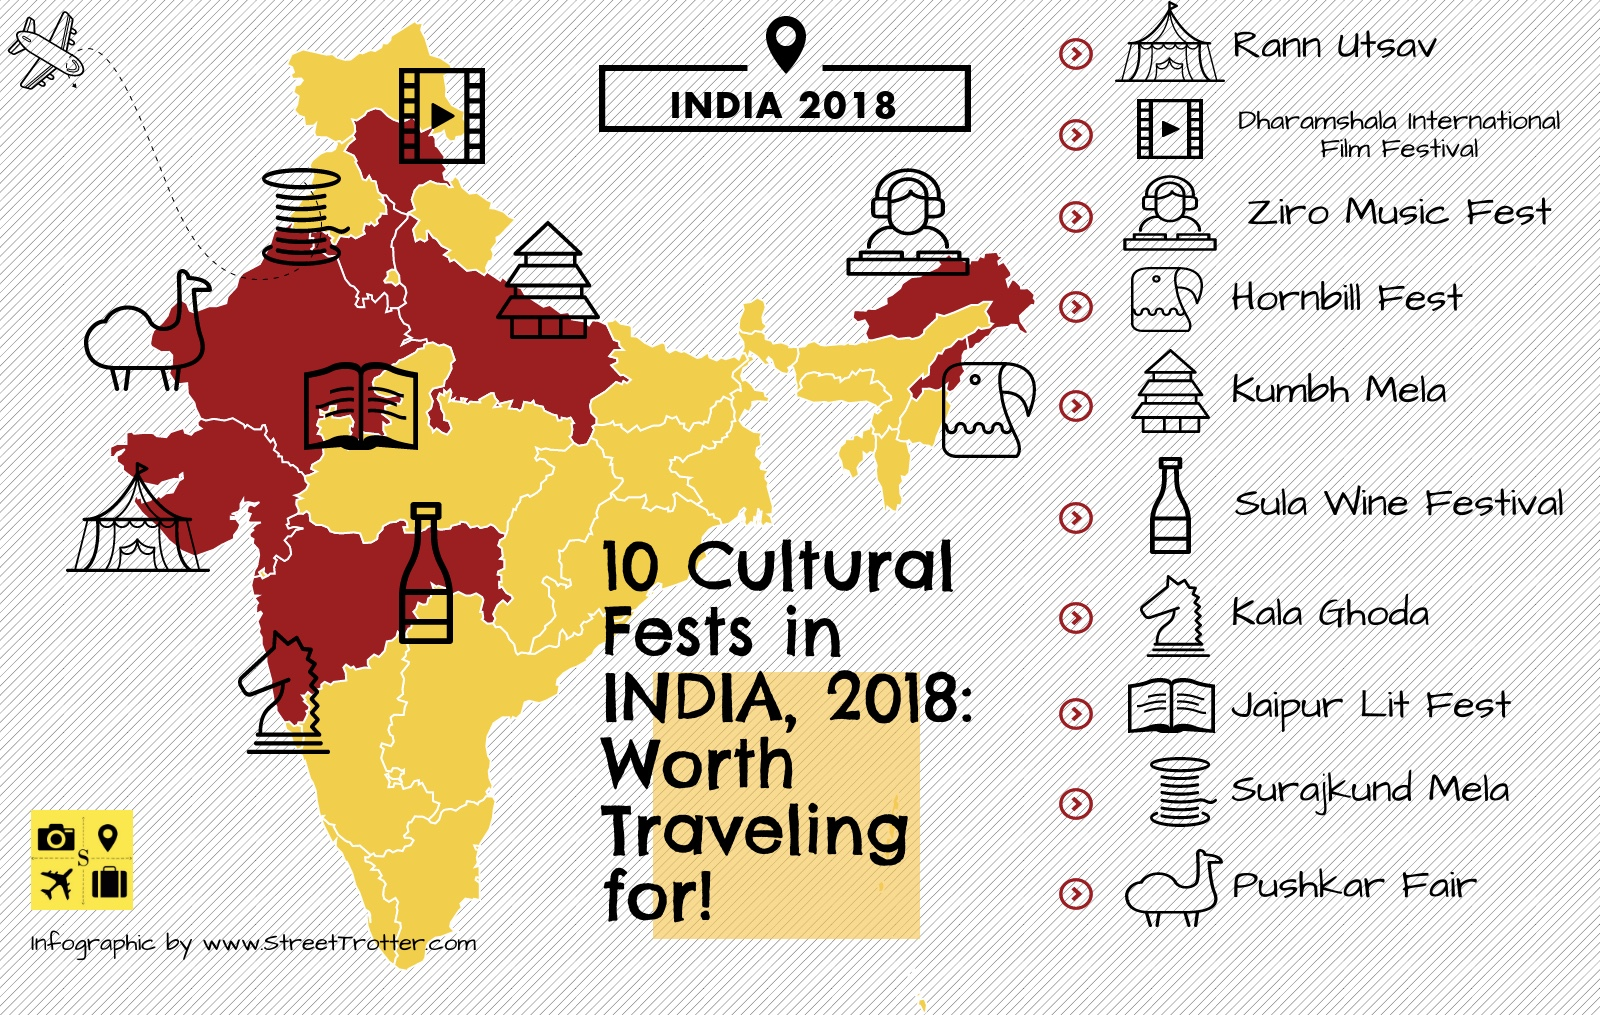 cultural fests - streettrotter